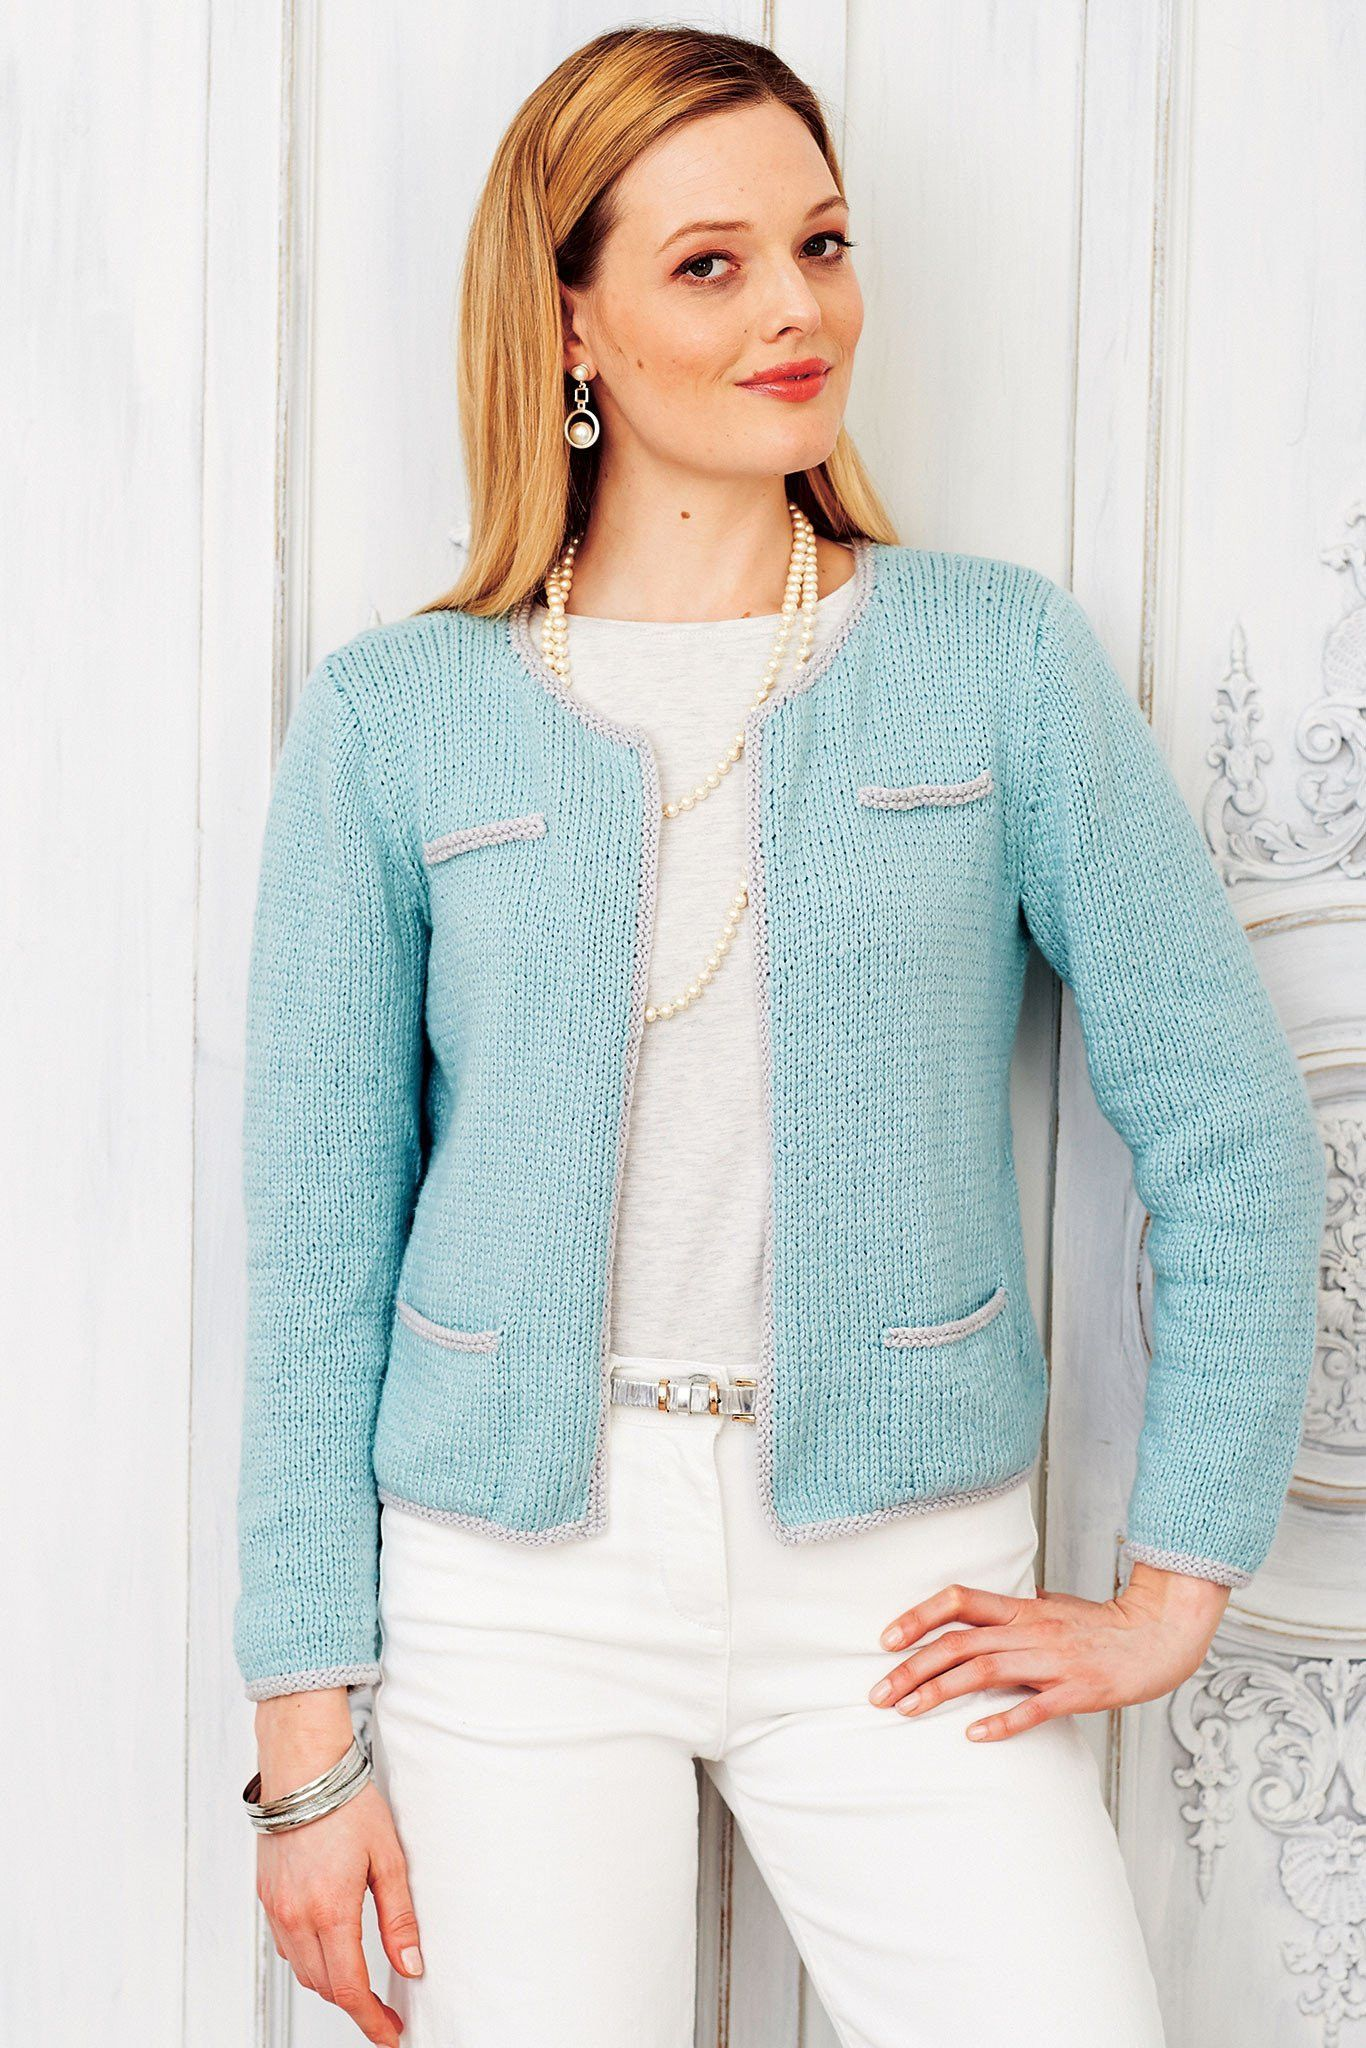 Vintage Smart Ladies Jacket Knitting Pattern | The ...